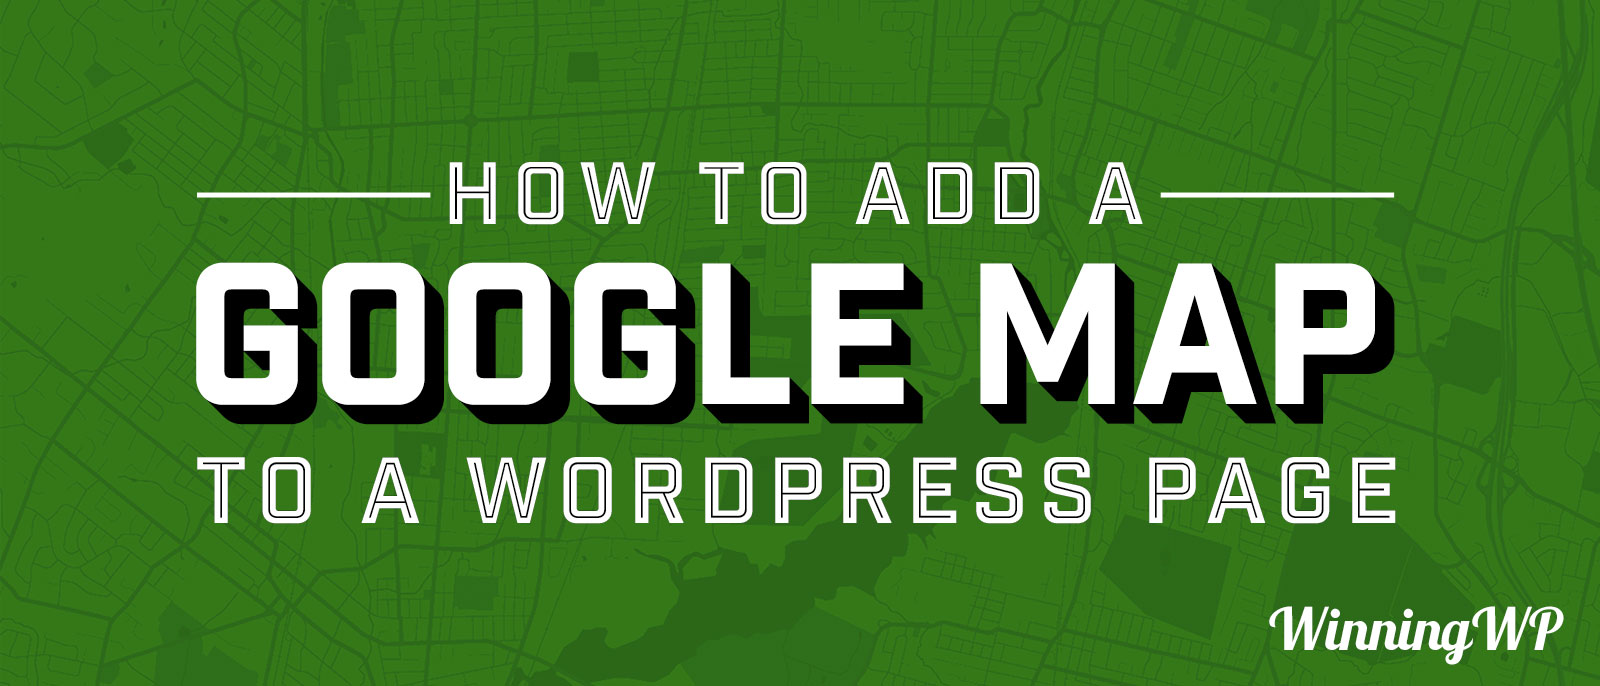 How to add a Google Map to WordPress